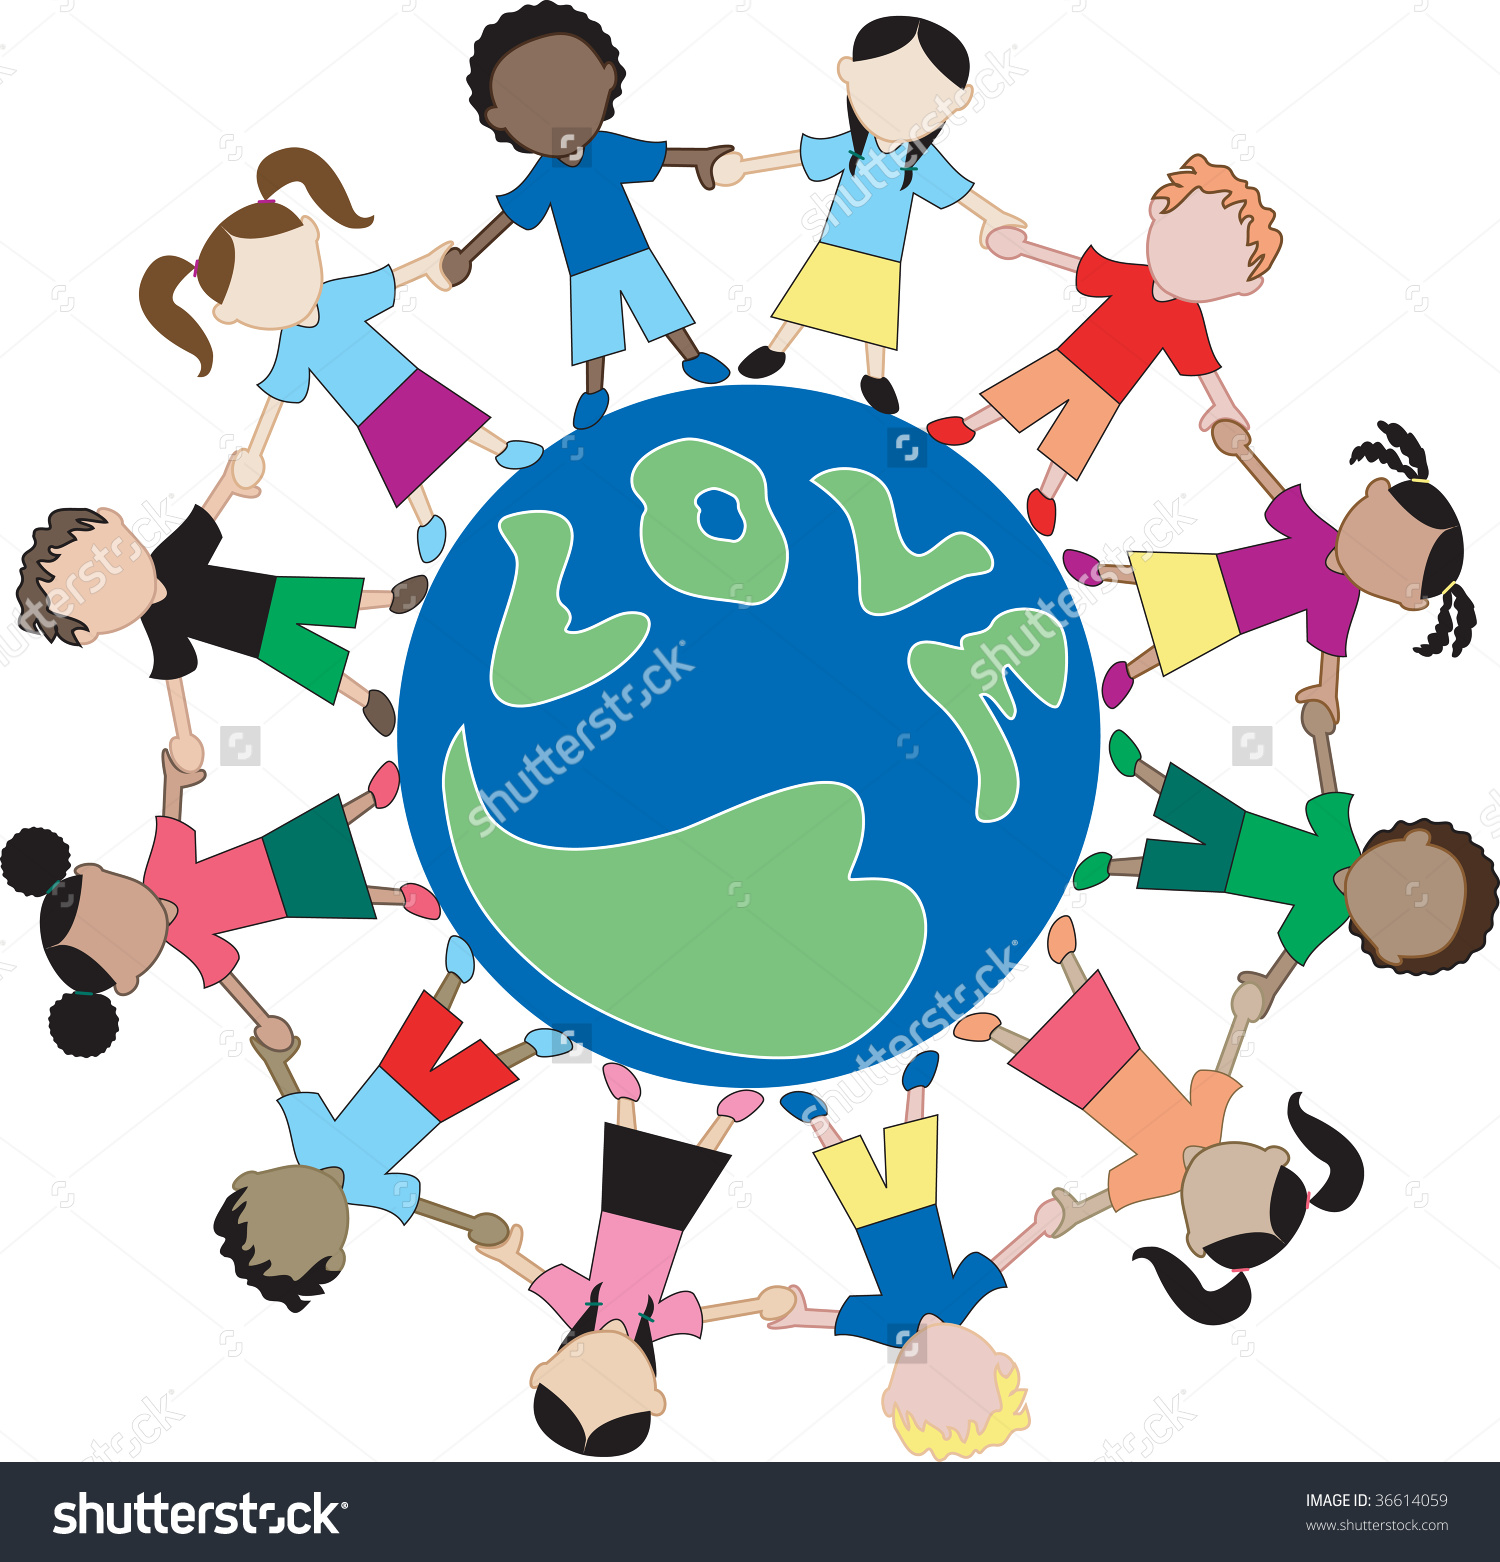 Showing love clipart clip freeuse Kids Love Globe 2 Showing Love Stock Vector 36614059 - Shutterstock clip freeuse